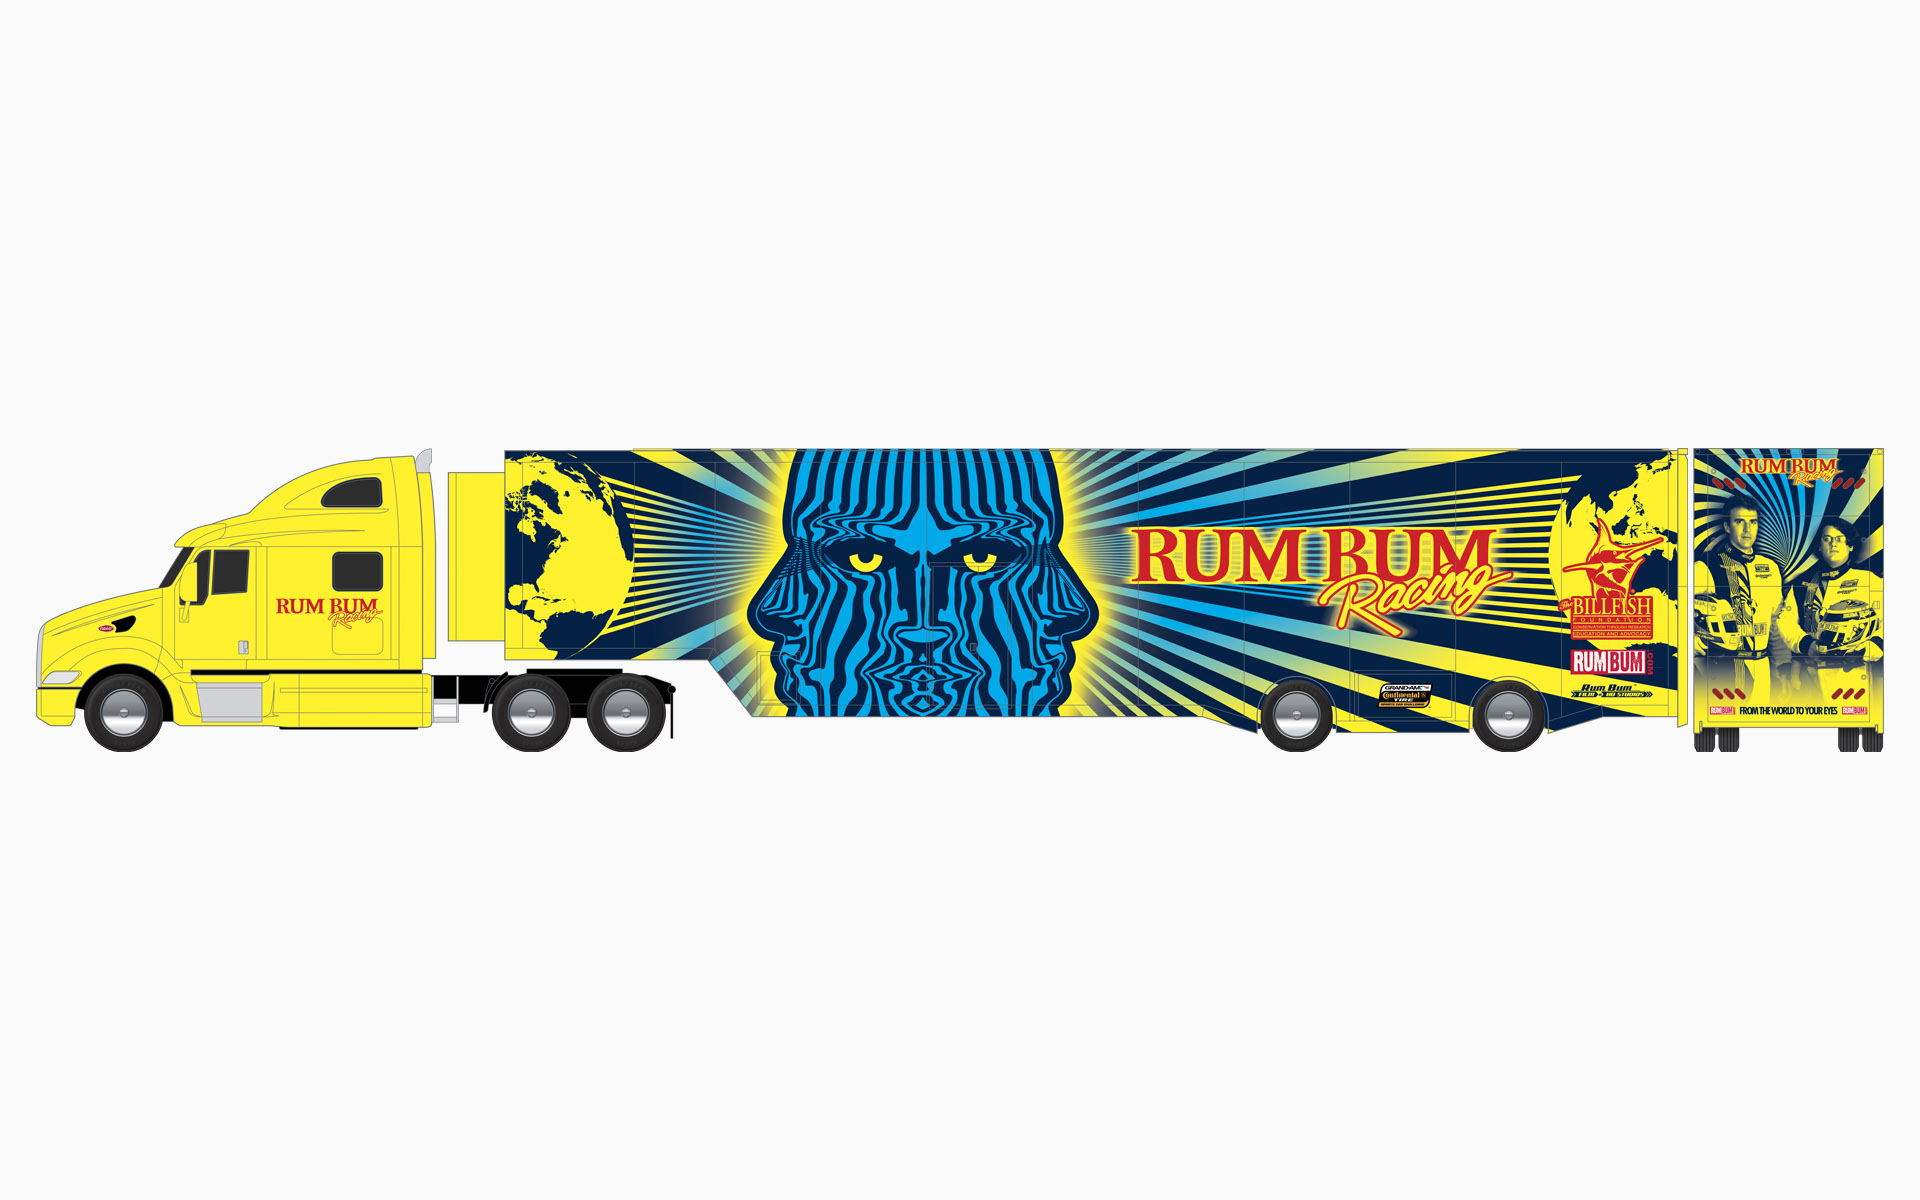 Rum Bum Racing Transporter Livery Elevations